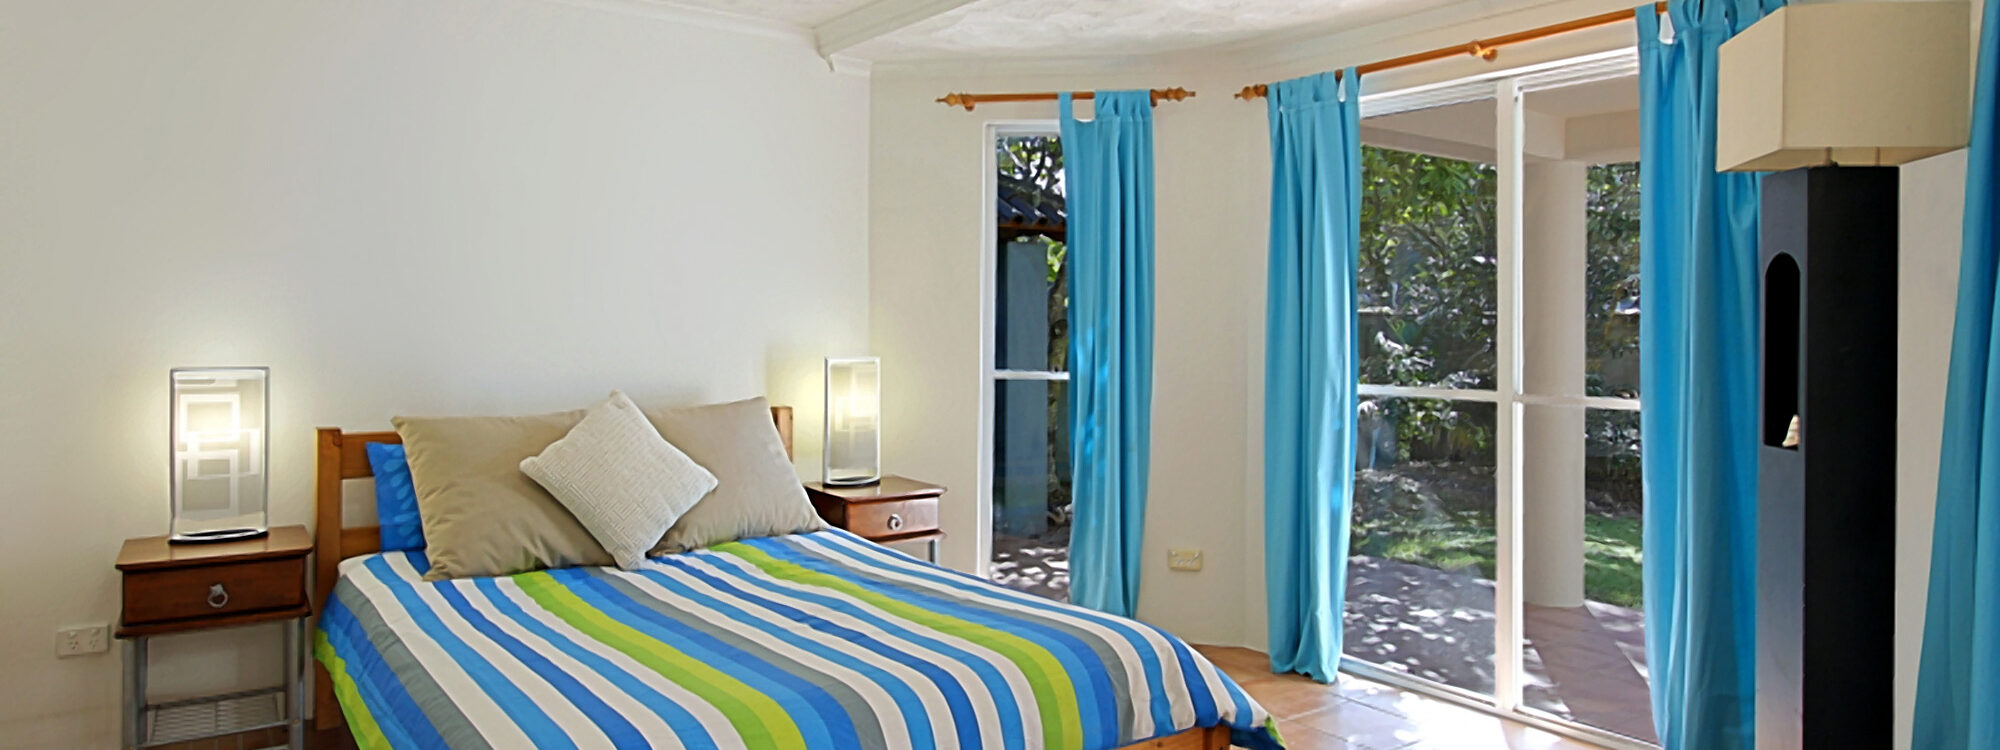 Clarkes Beach Villa - Bedroom